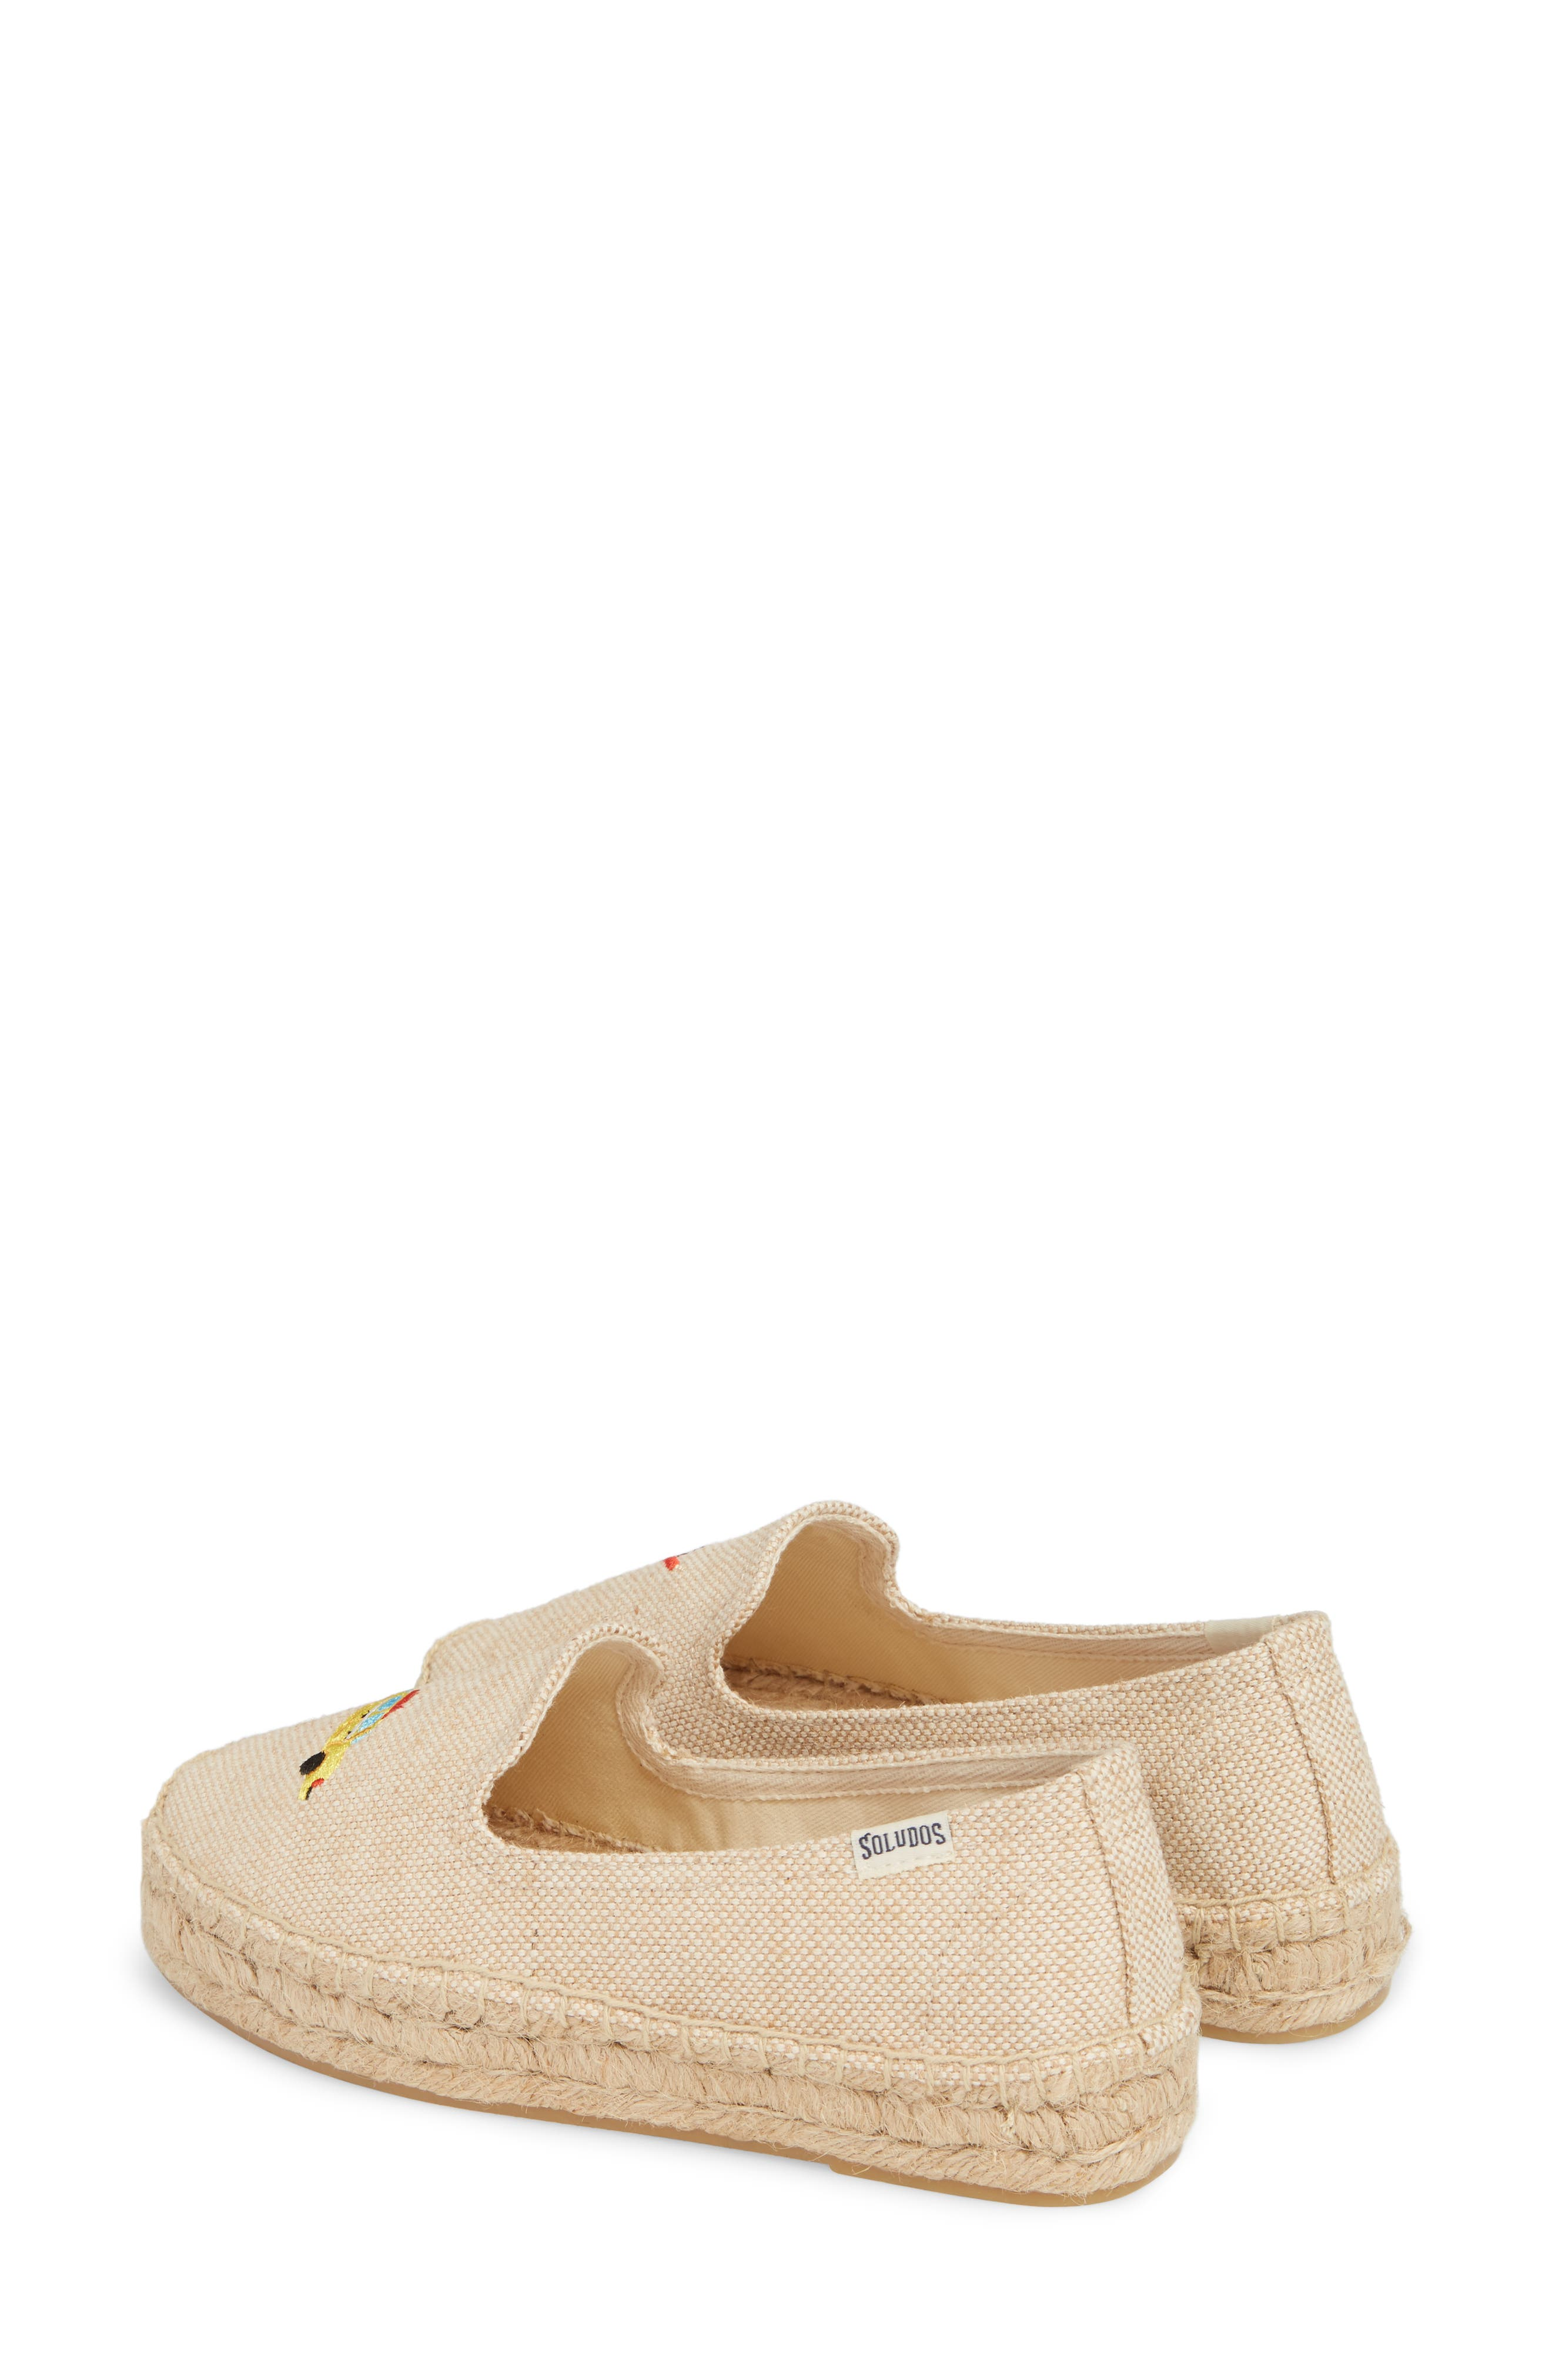 Taxi Embroidered Platform Espadrille,                             Alternate thumbnail 3, color,                             Natural Canvas